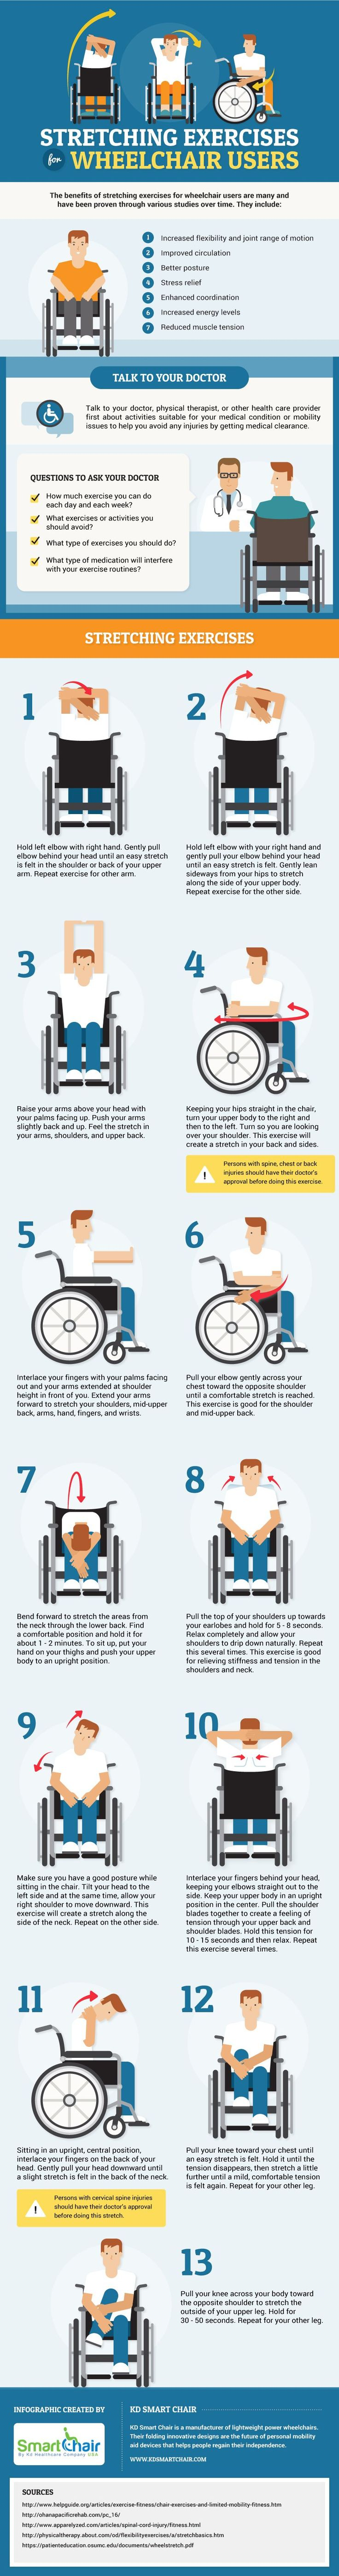 KD Smart Chair created an infographic on stretching exercises for wheelchair users. Benefits of stretching including improved circulation, stress relief & more.